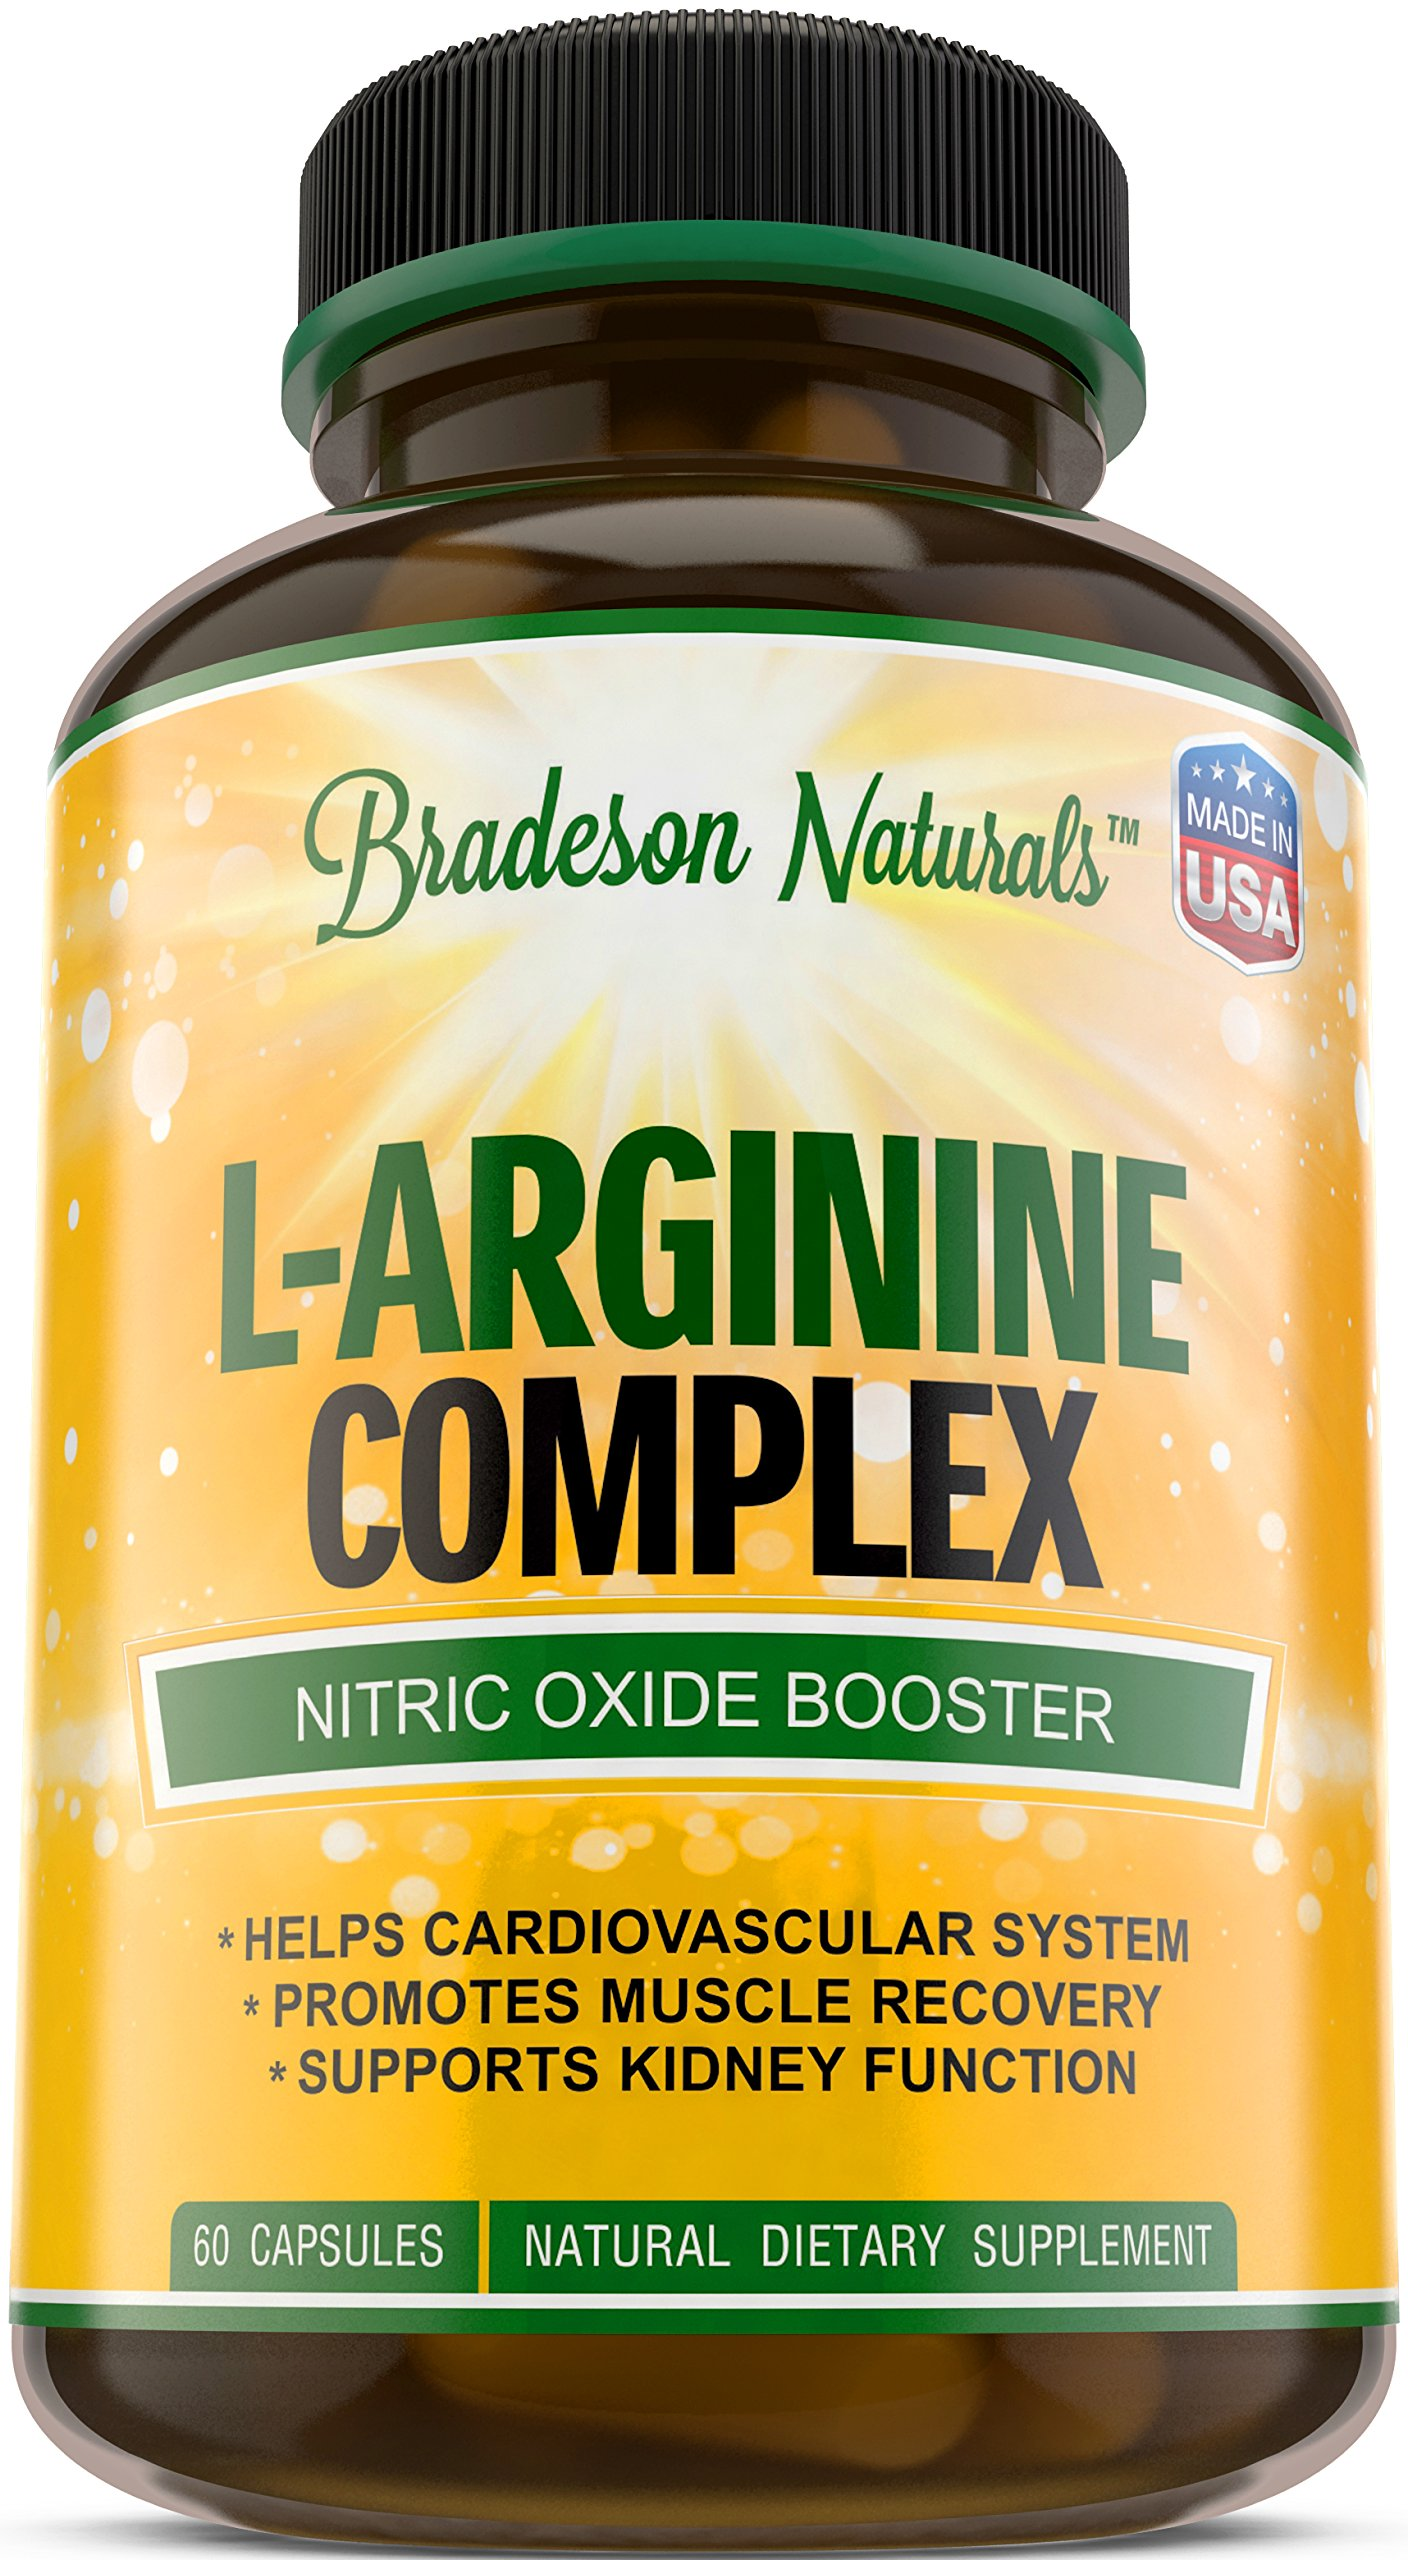 L-Arginine & L-Citrulline Supplement. Nitric Oxide Booster. Speeds up Workout Recovery. Vital & Natural Amino Acid. Supports Cardiovascular Health & Regulates Blood Pressure. Made in USA.